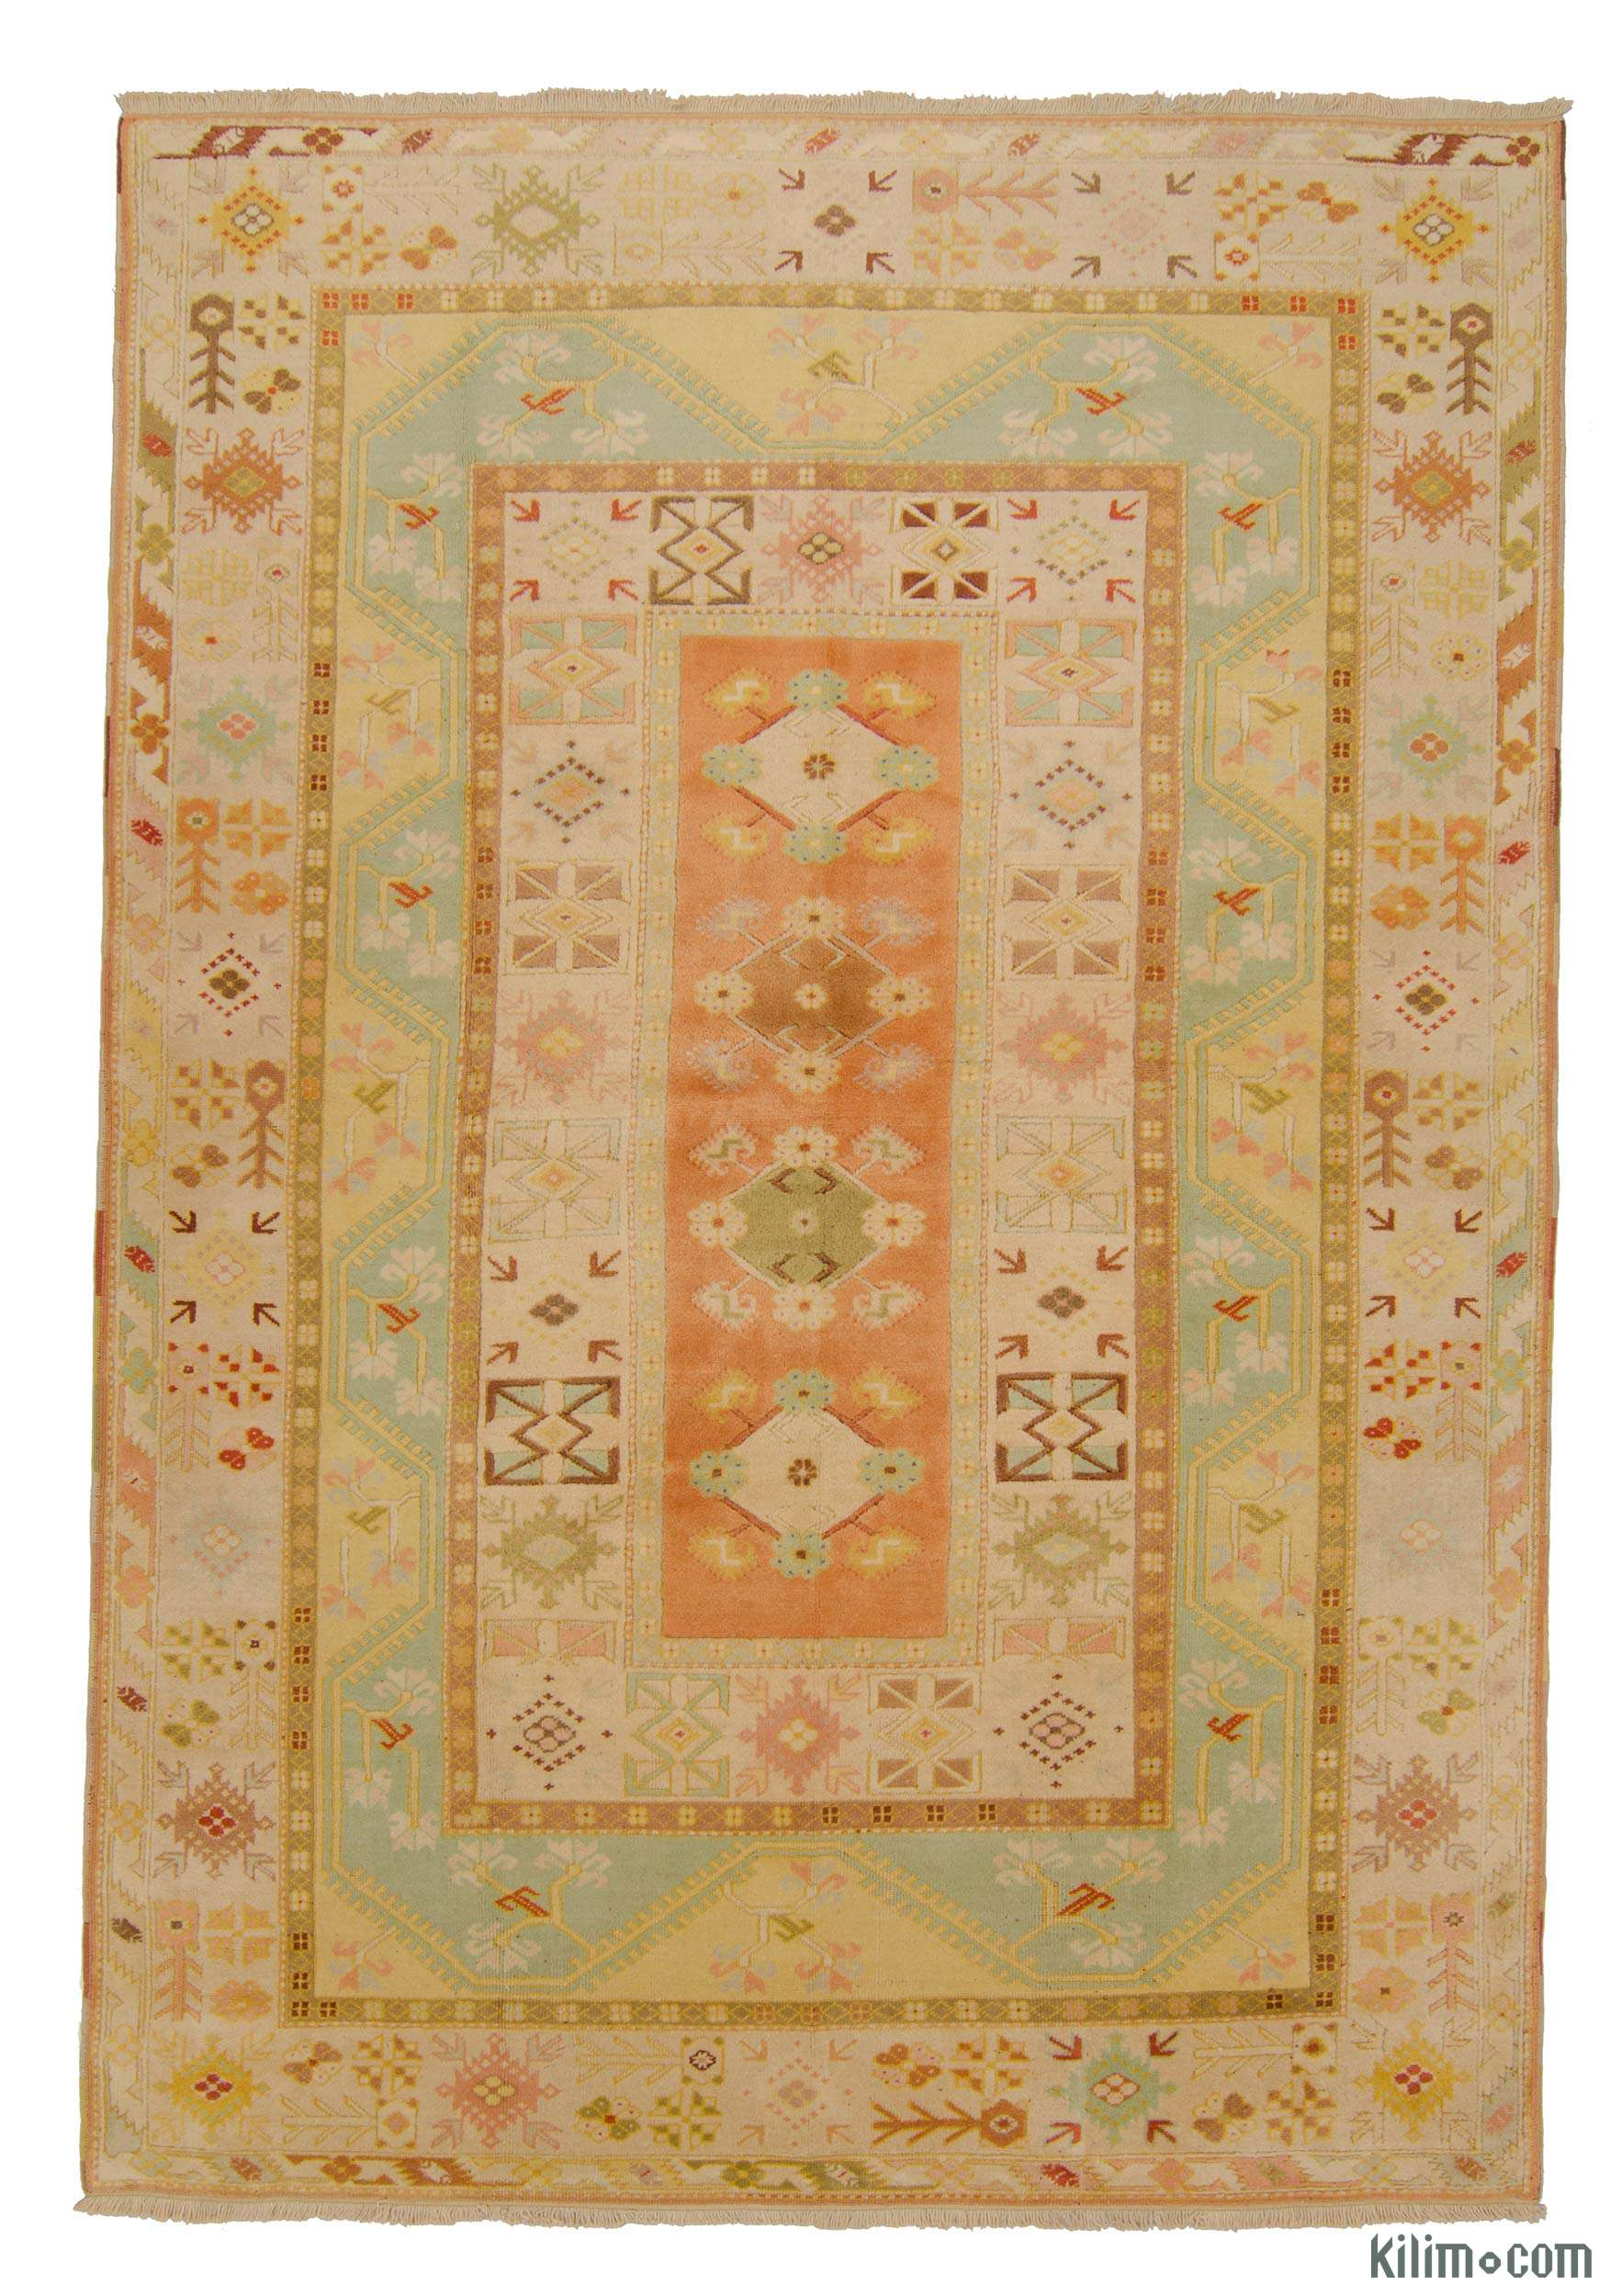 Yellow Orange New Turkish Carpet 6 7 X 9 5 79 In 113